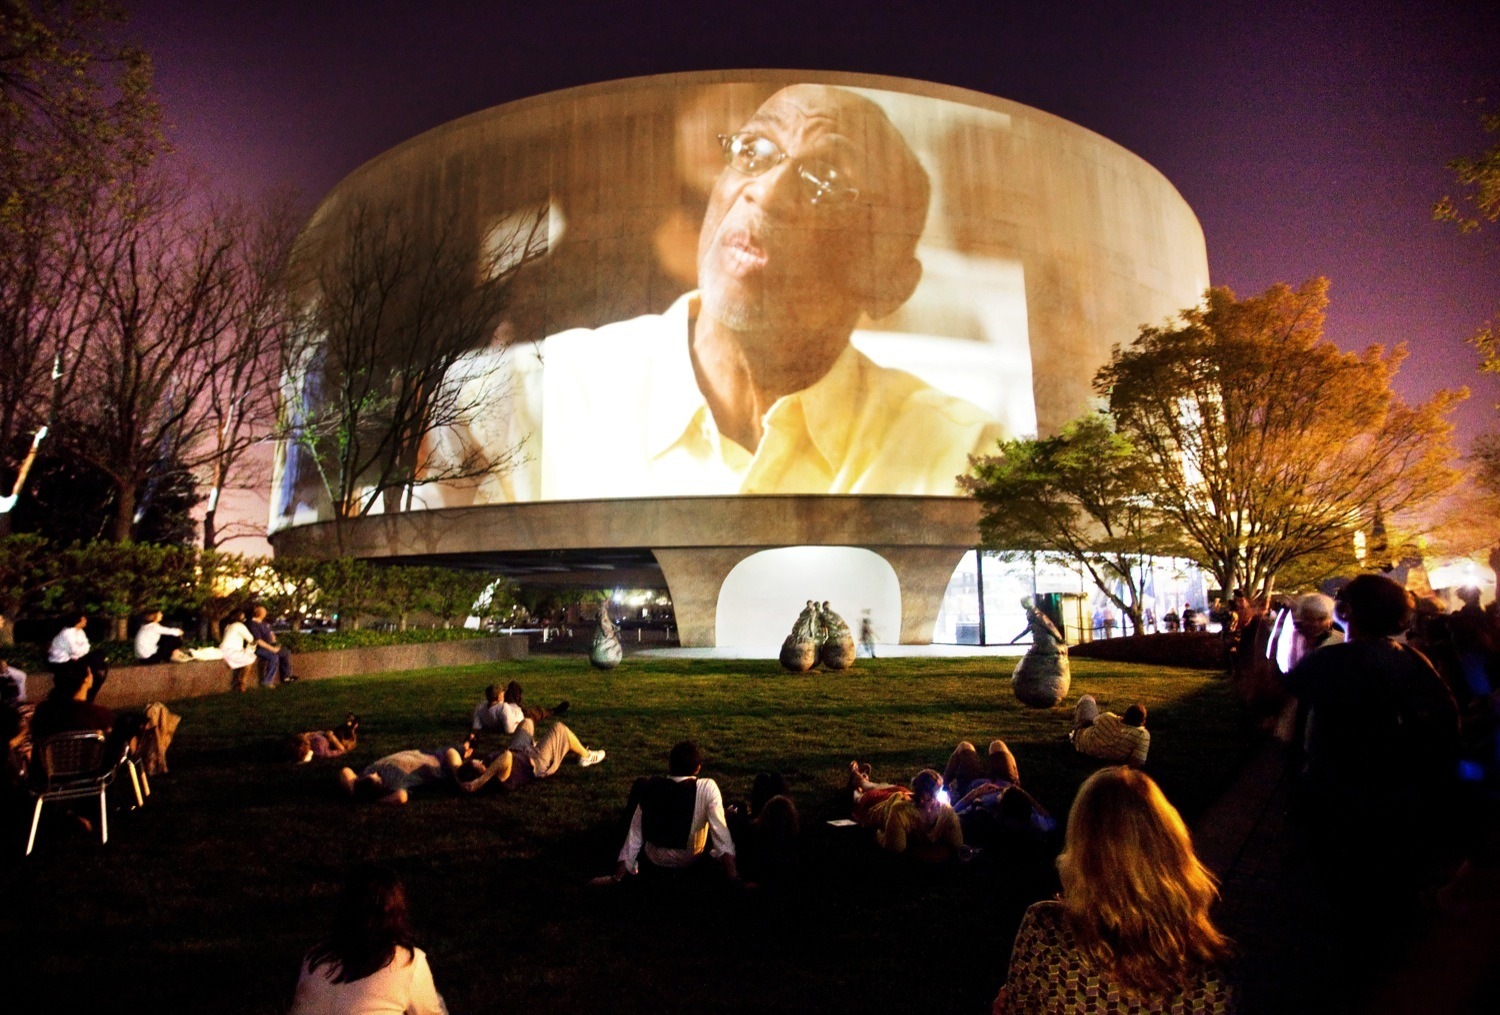 Hirshhorn Museum & Sculpture Garden cinema